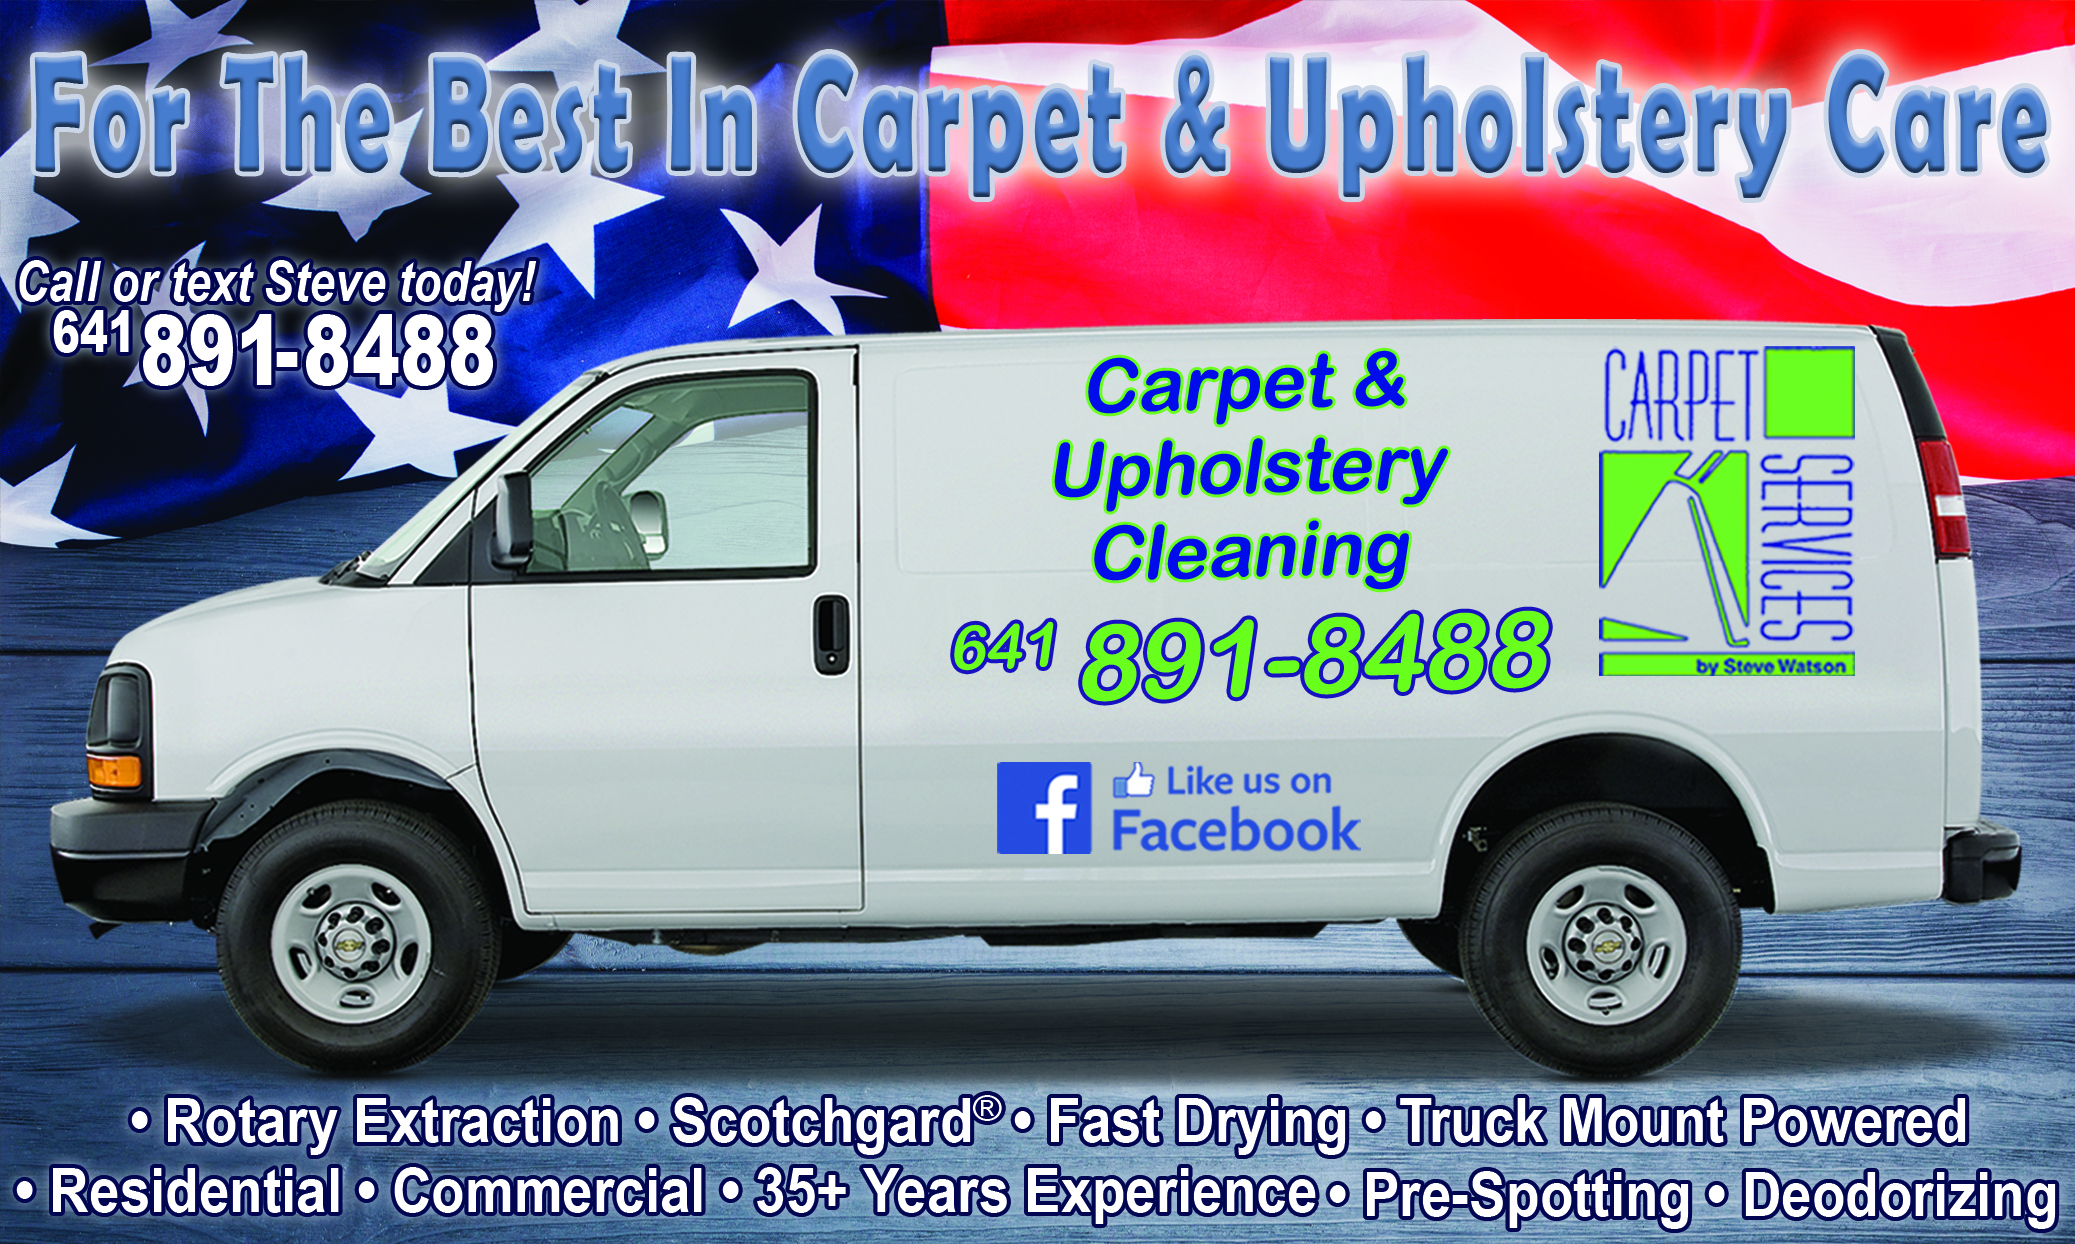 Carpet Services by Steve Watson